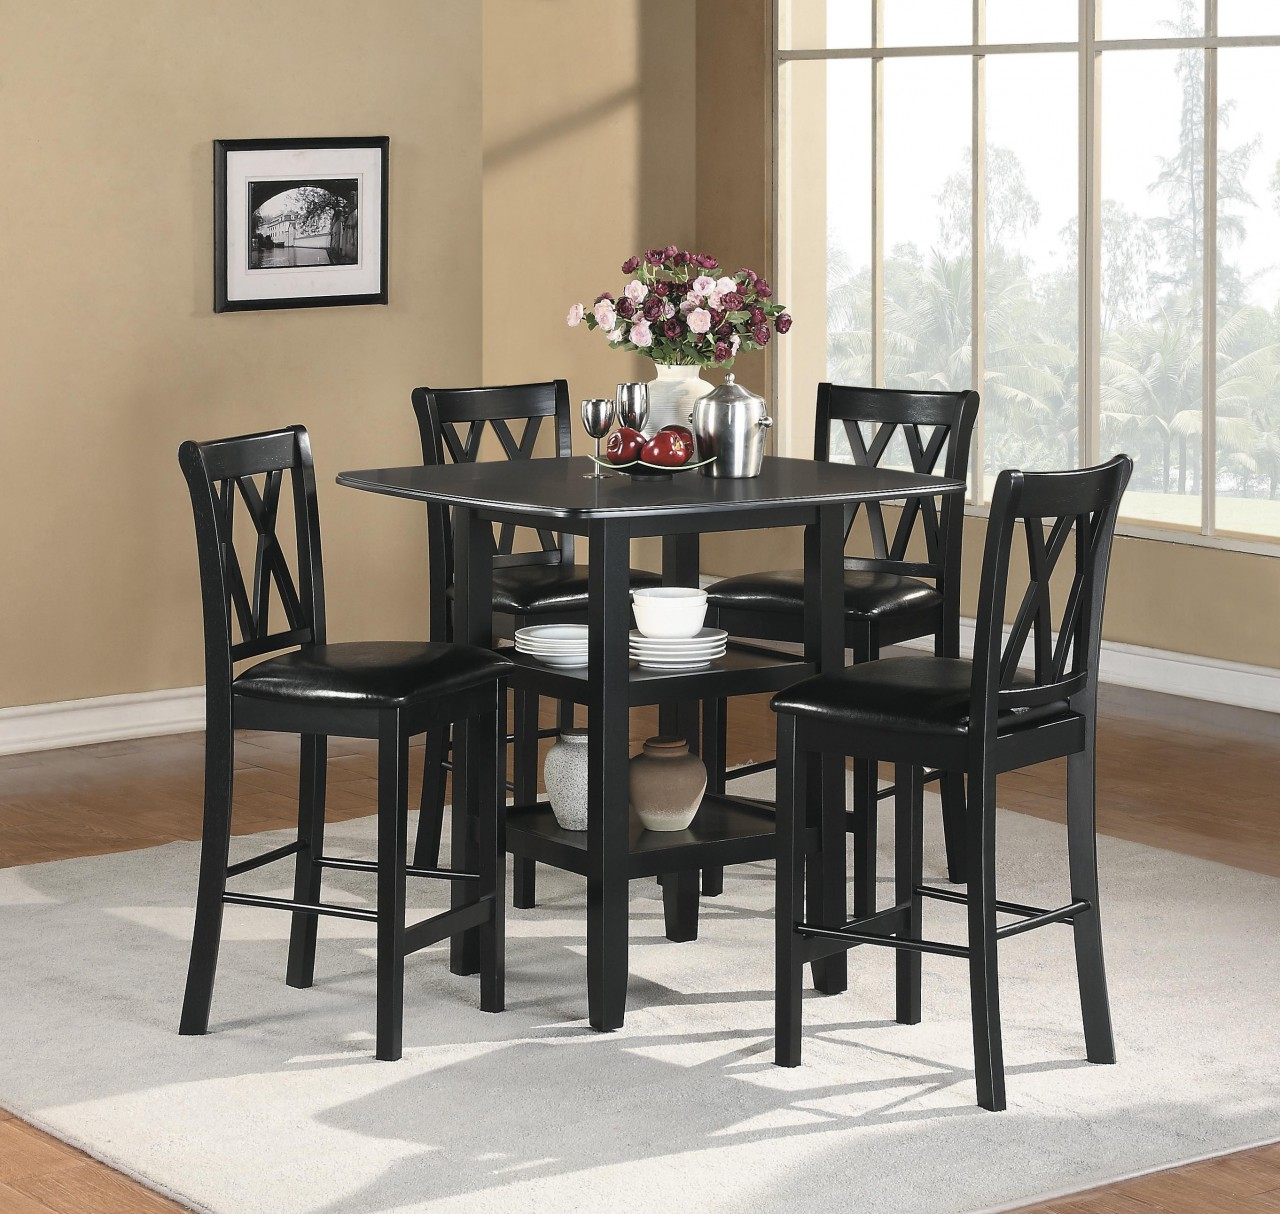 Stanton Counter Height Dining Table In Black: Homelegance Norman 5-Piece Counter Height Table Set In